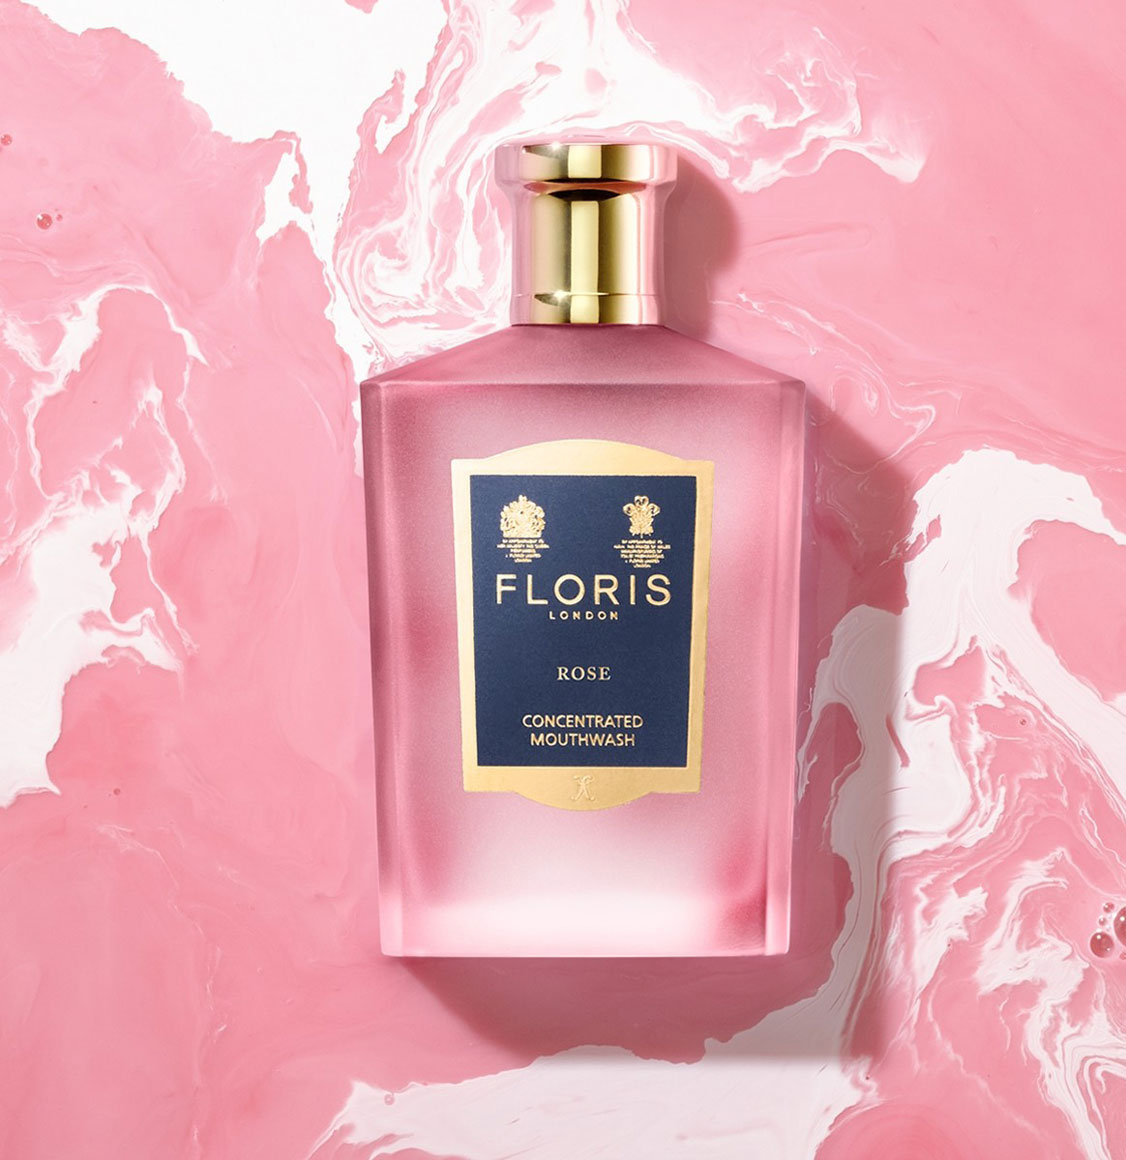 Floris London Rose Concentrated Mouthwash 100ml